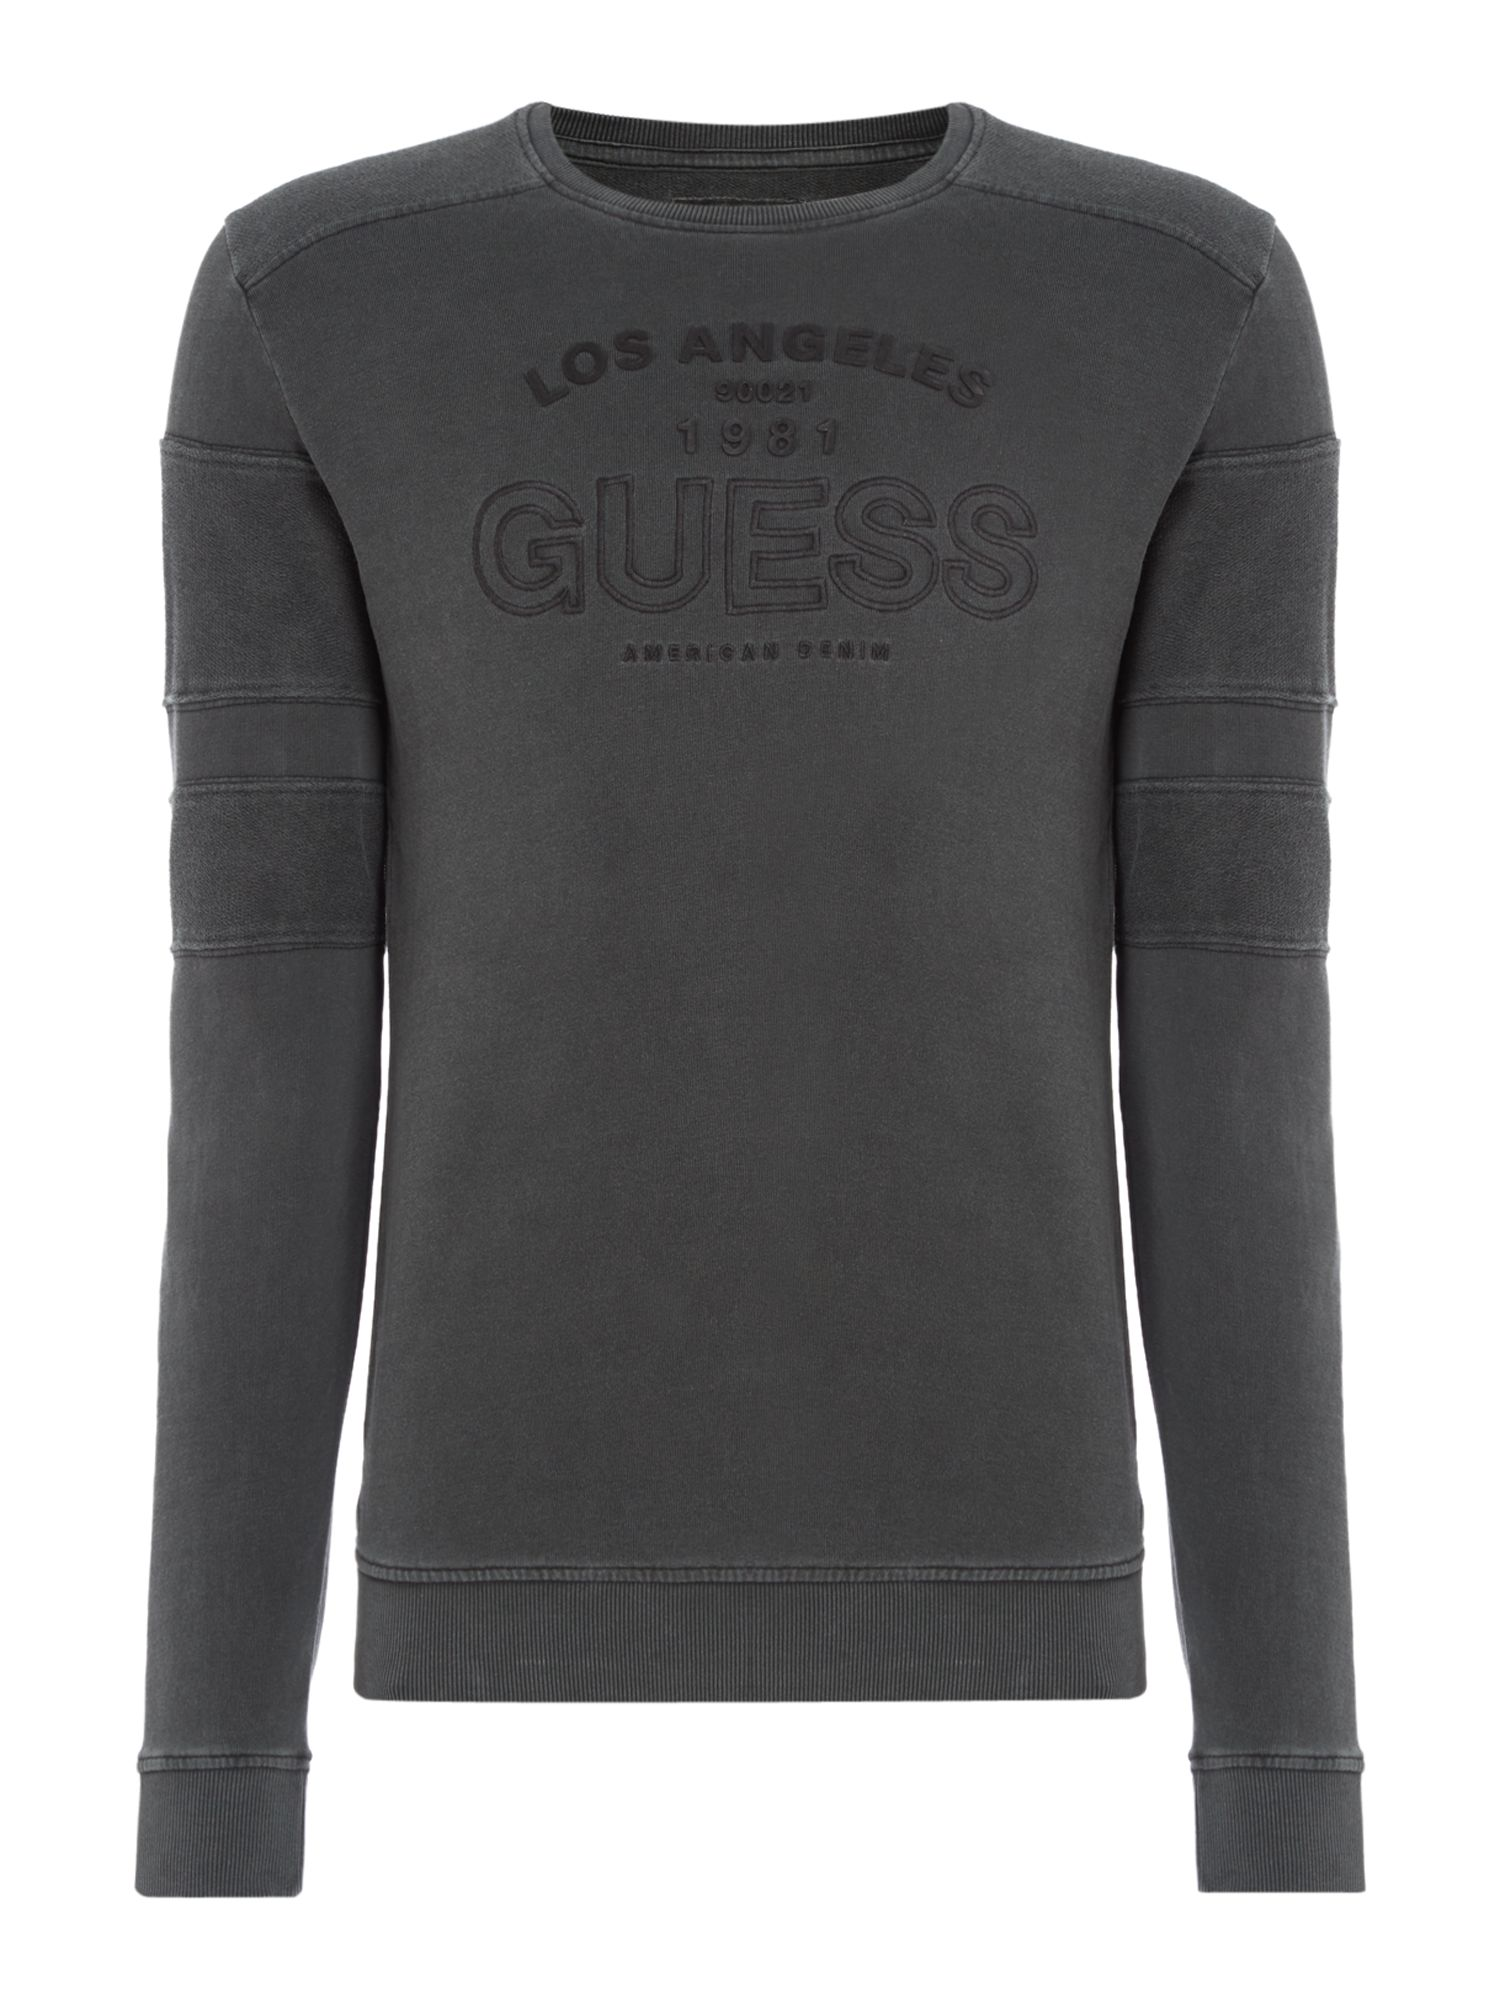 Men's Guess Panelled Logo Crew Neck Sweatshirt, Washed Black